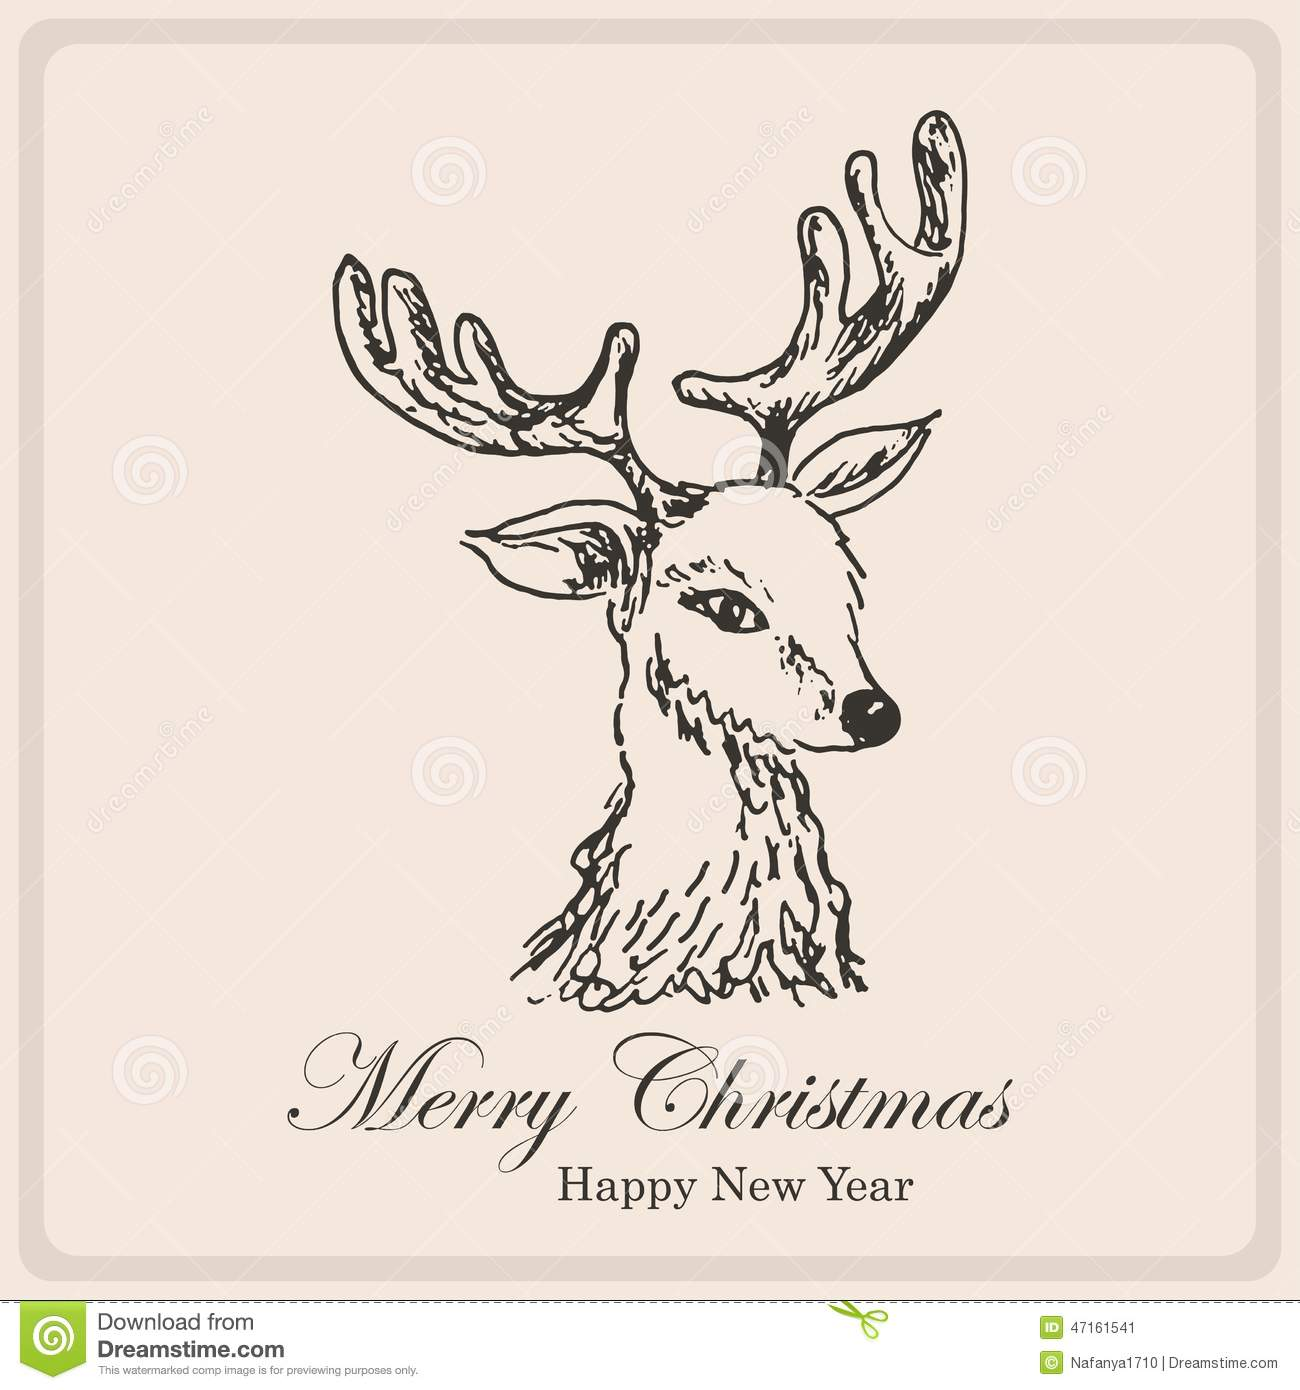 Reindeer Christmas Cards Drawings.Christmas Card With Sketch Deer Hand Drawing Illustration